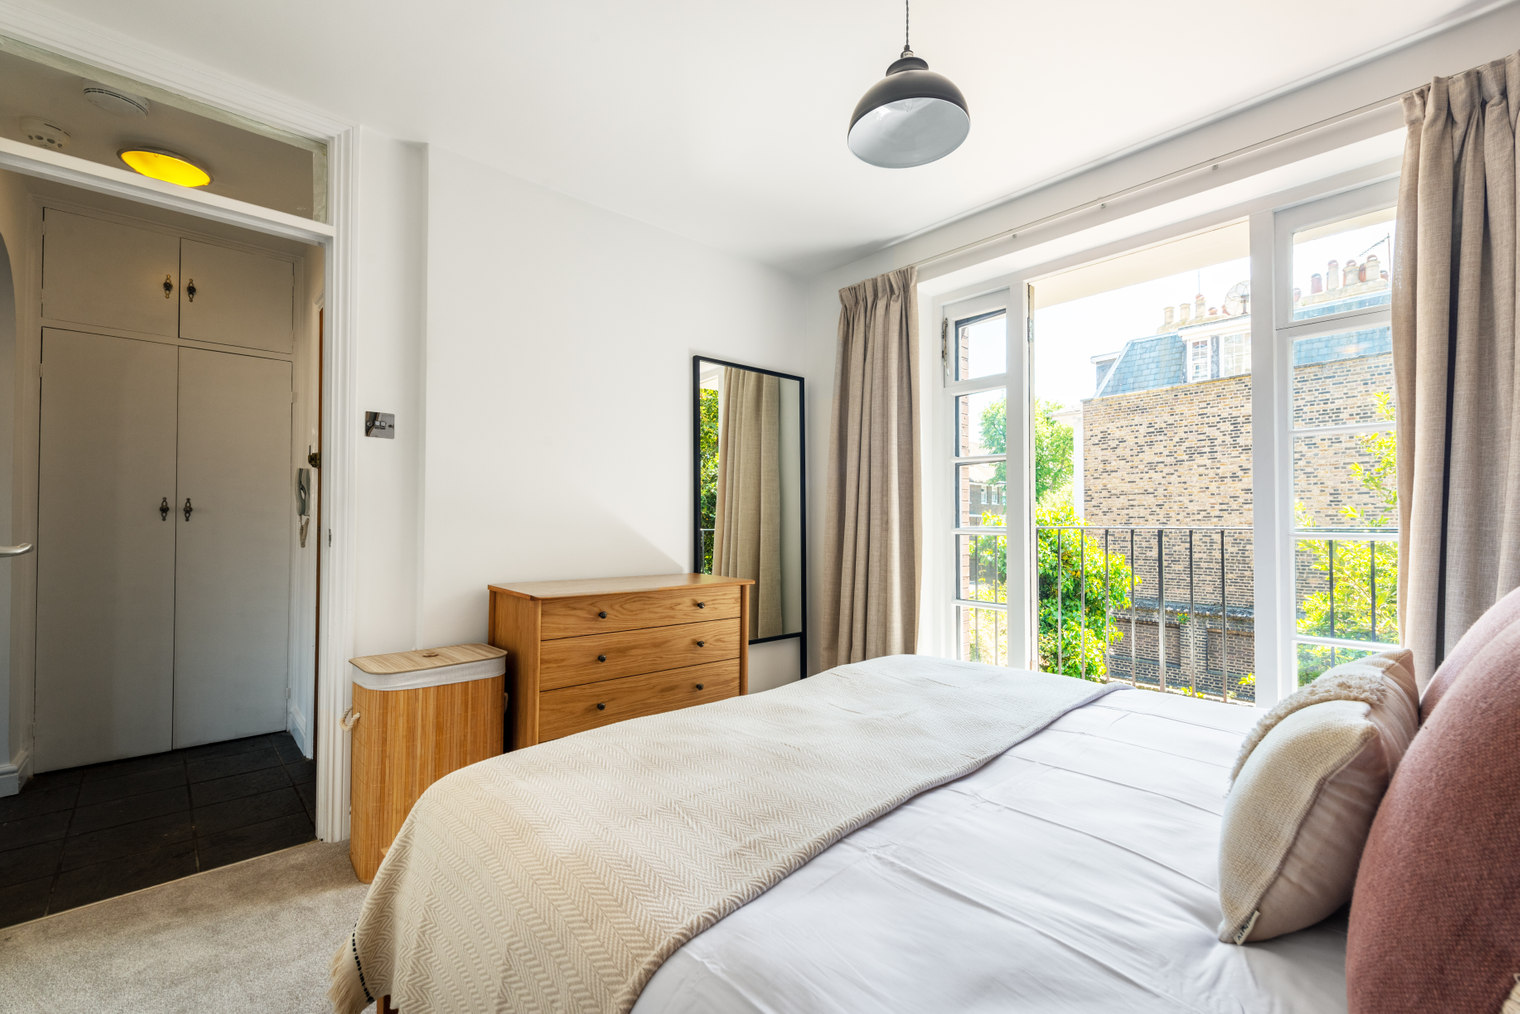 Bedding at Moscow Road Apartment, Bayswater, London